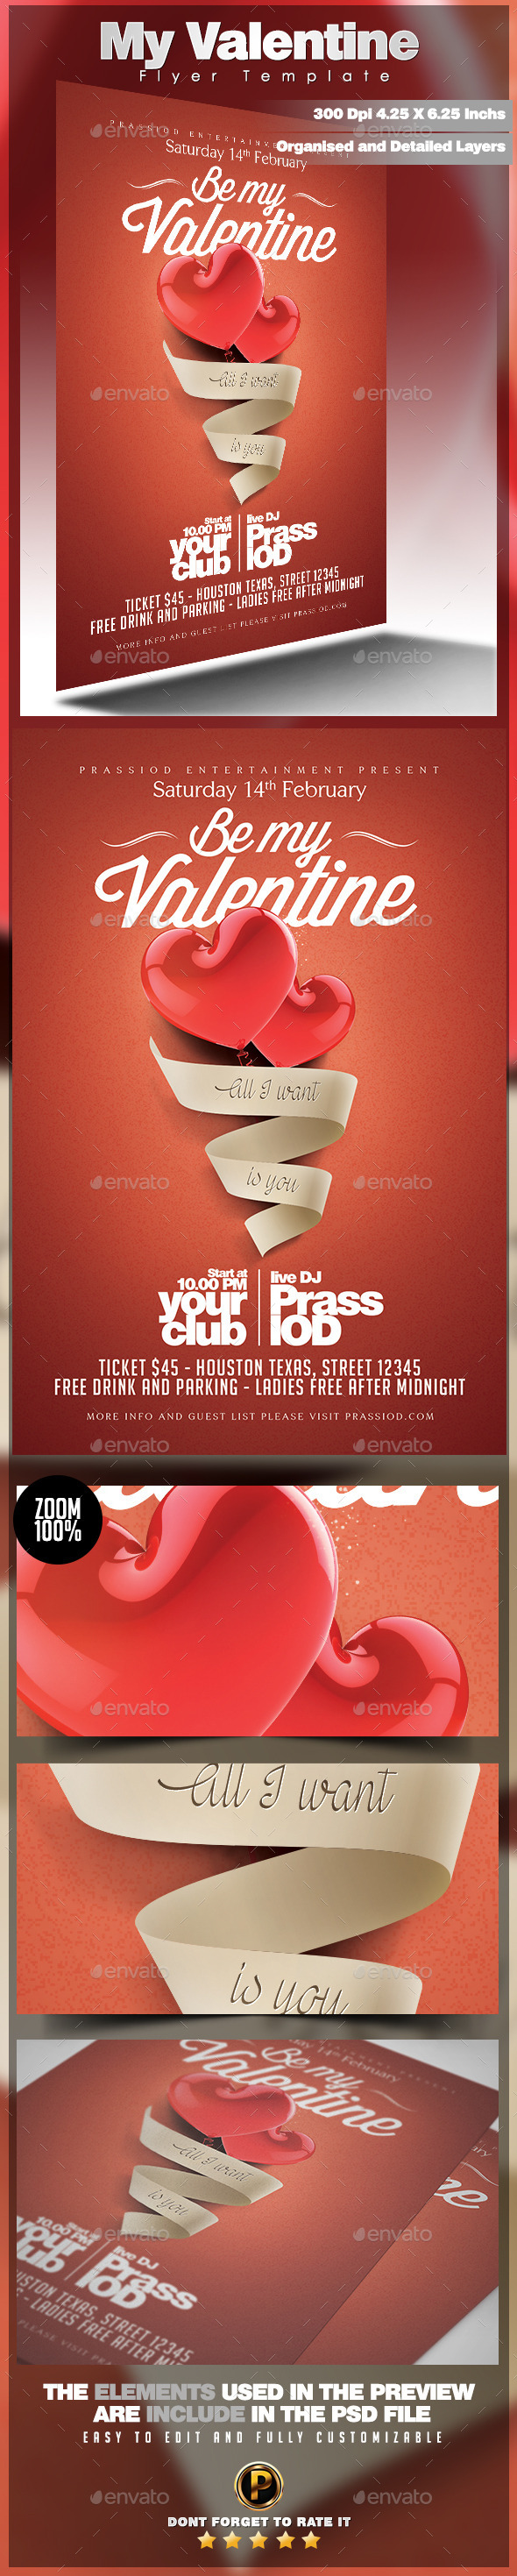 My Valentine Flyer Template